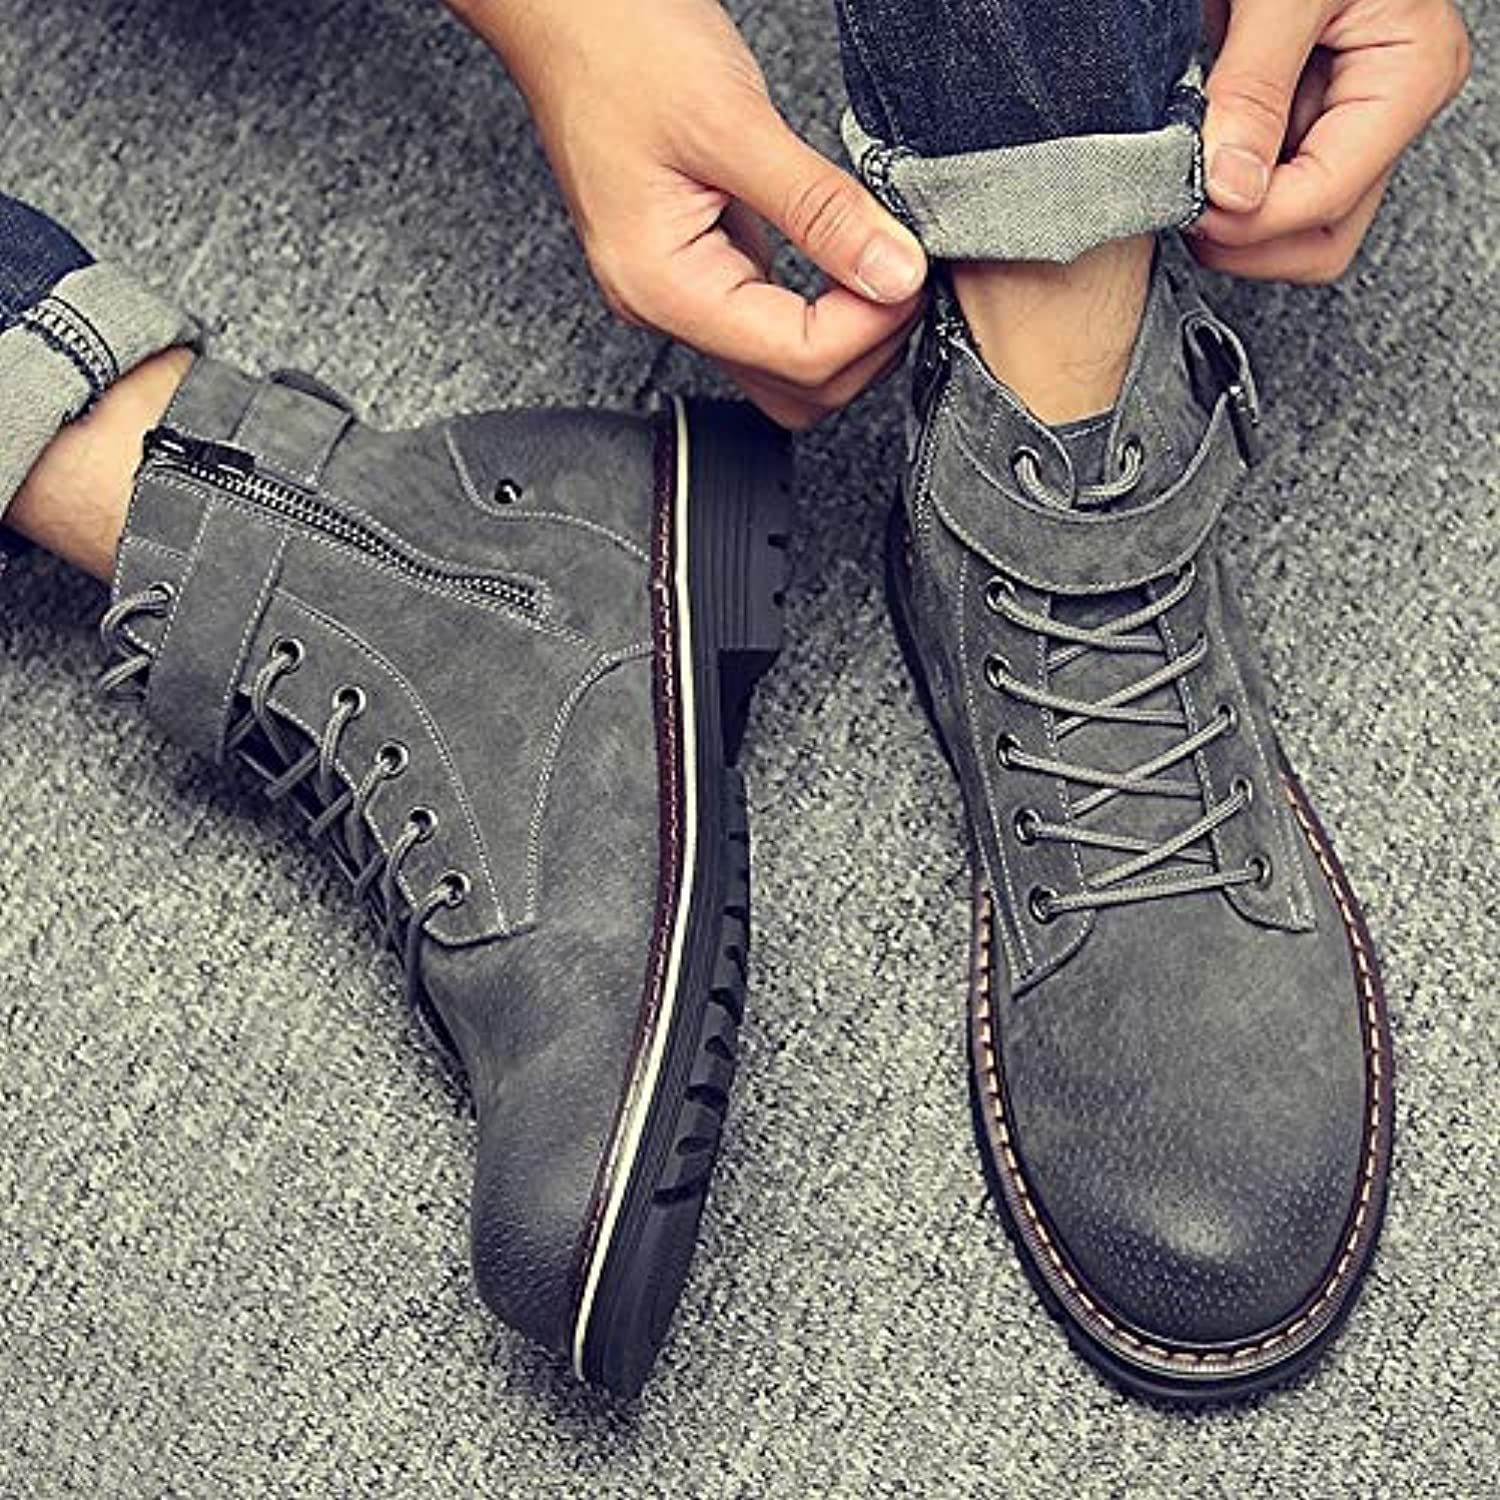 Shukun Men's boots Martin Boots Men'S Winter Autumn Versatile Zipper Cotton To Help High Boots Boots Tooling shoes